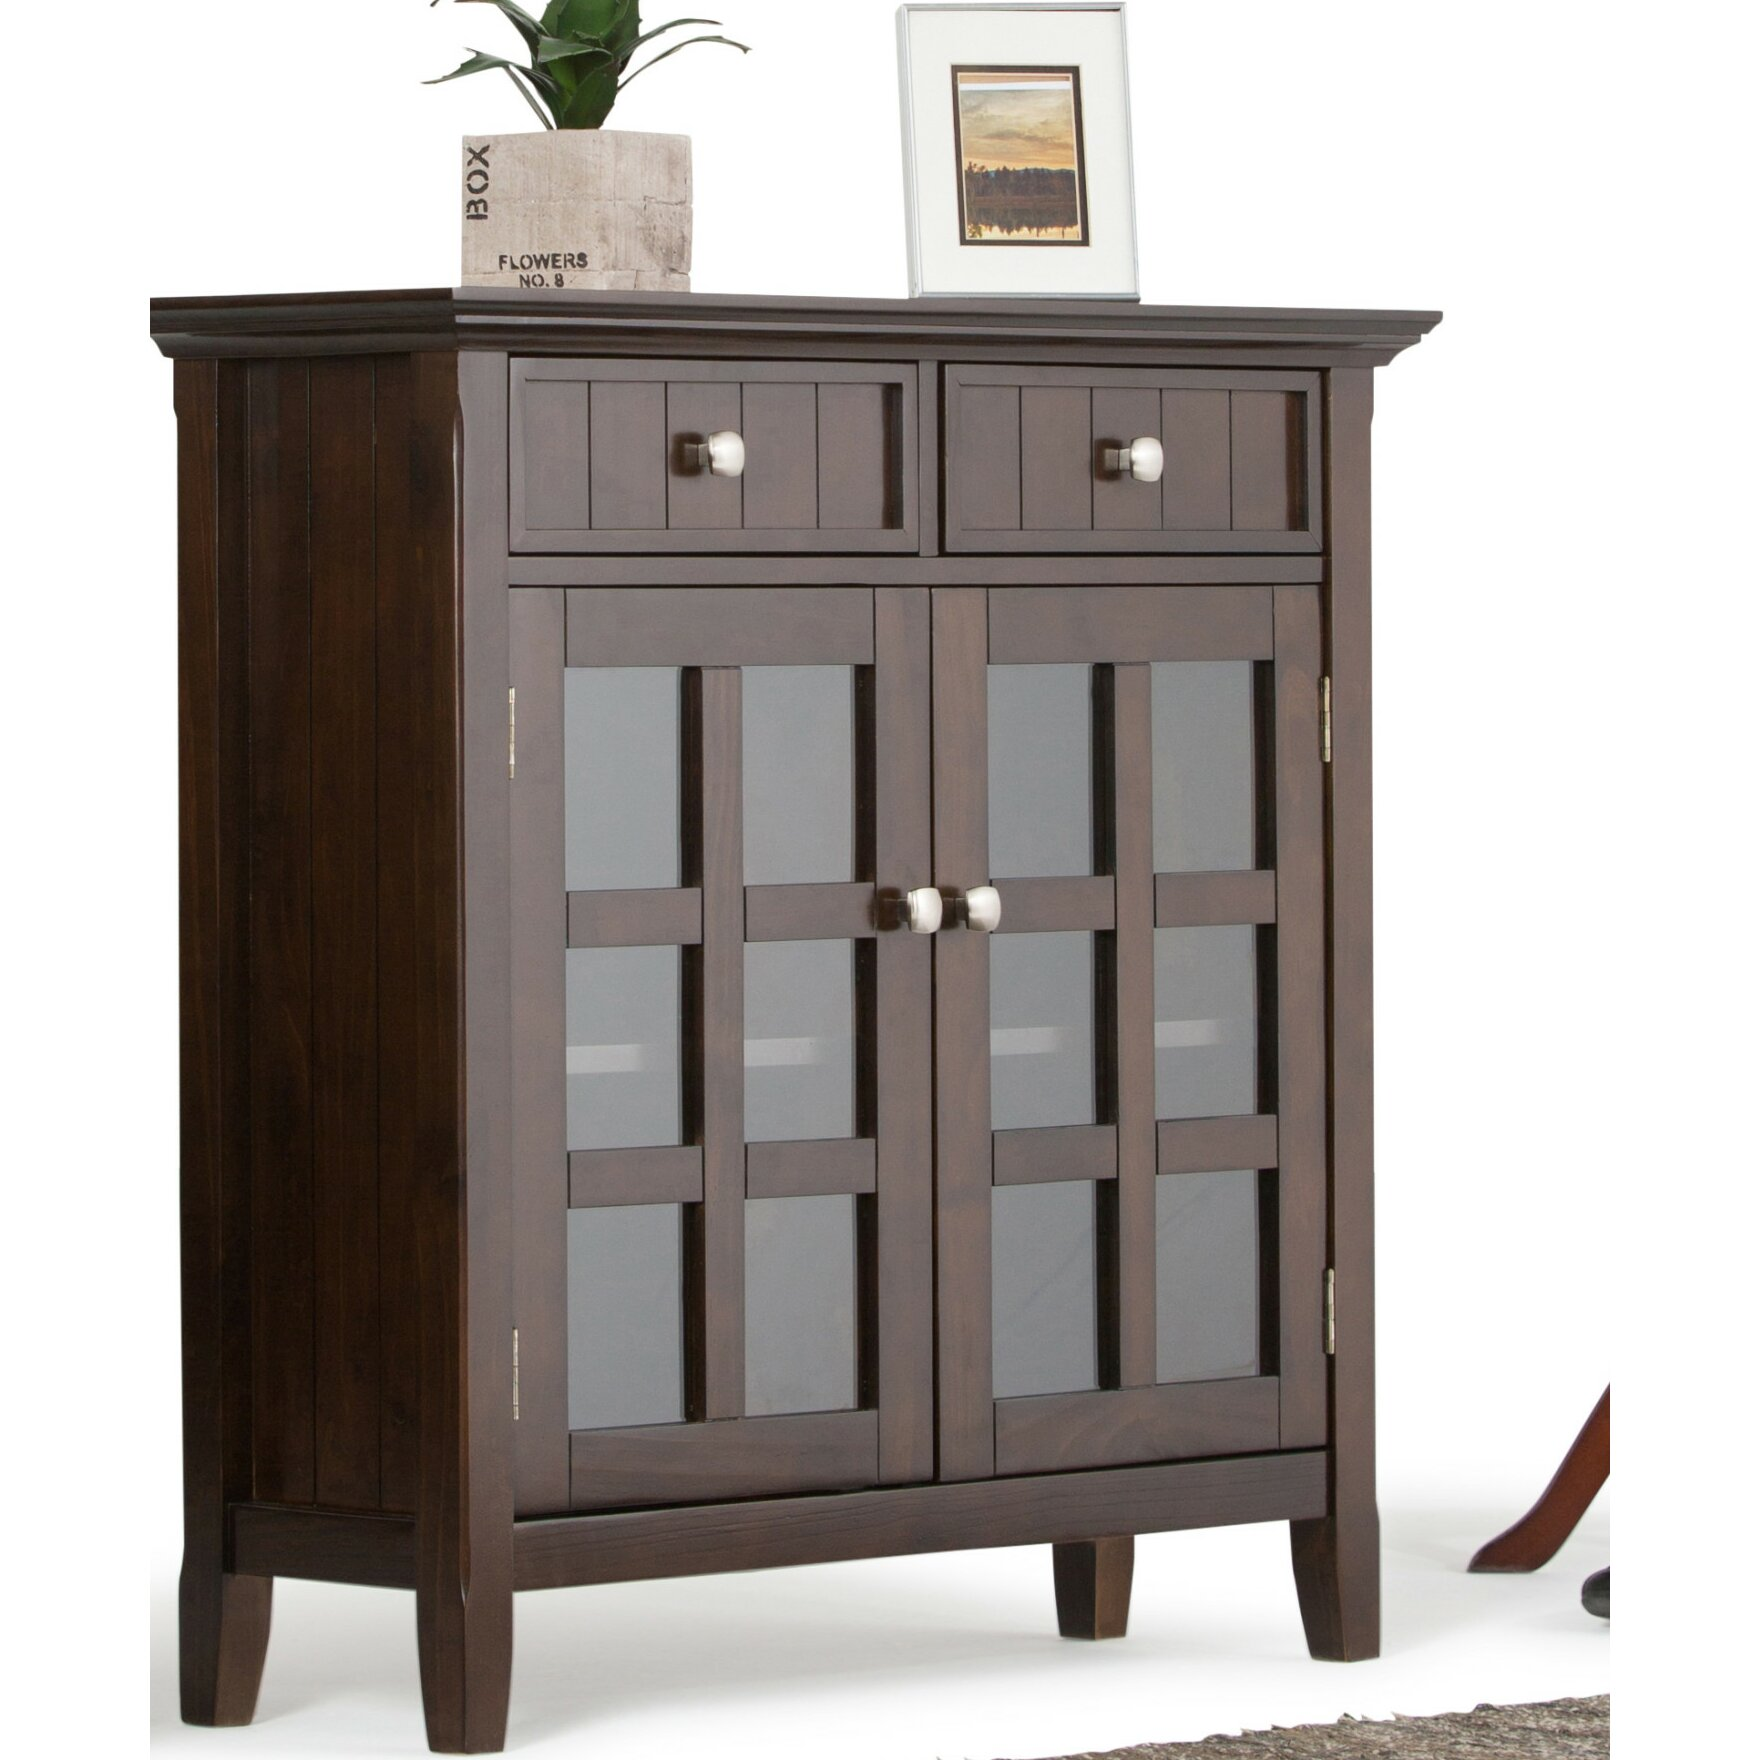 Simpli Home Acadian 2 Drawer Entryway Storage Cabinet | Wayfair